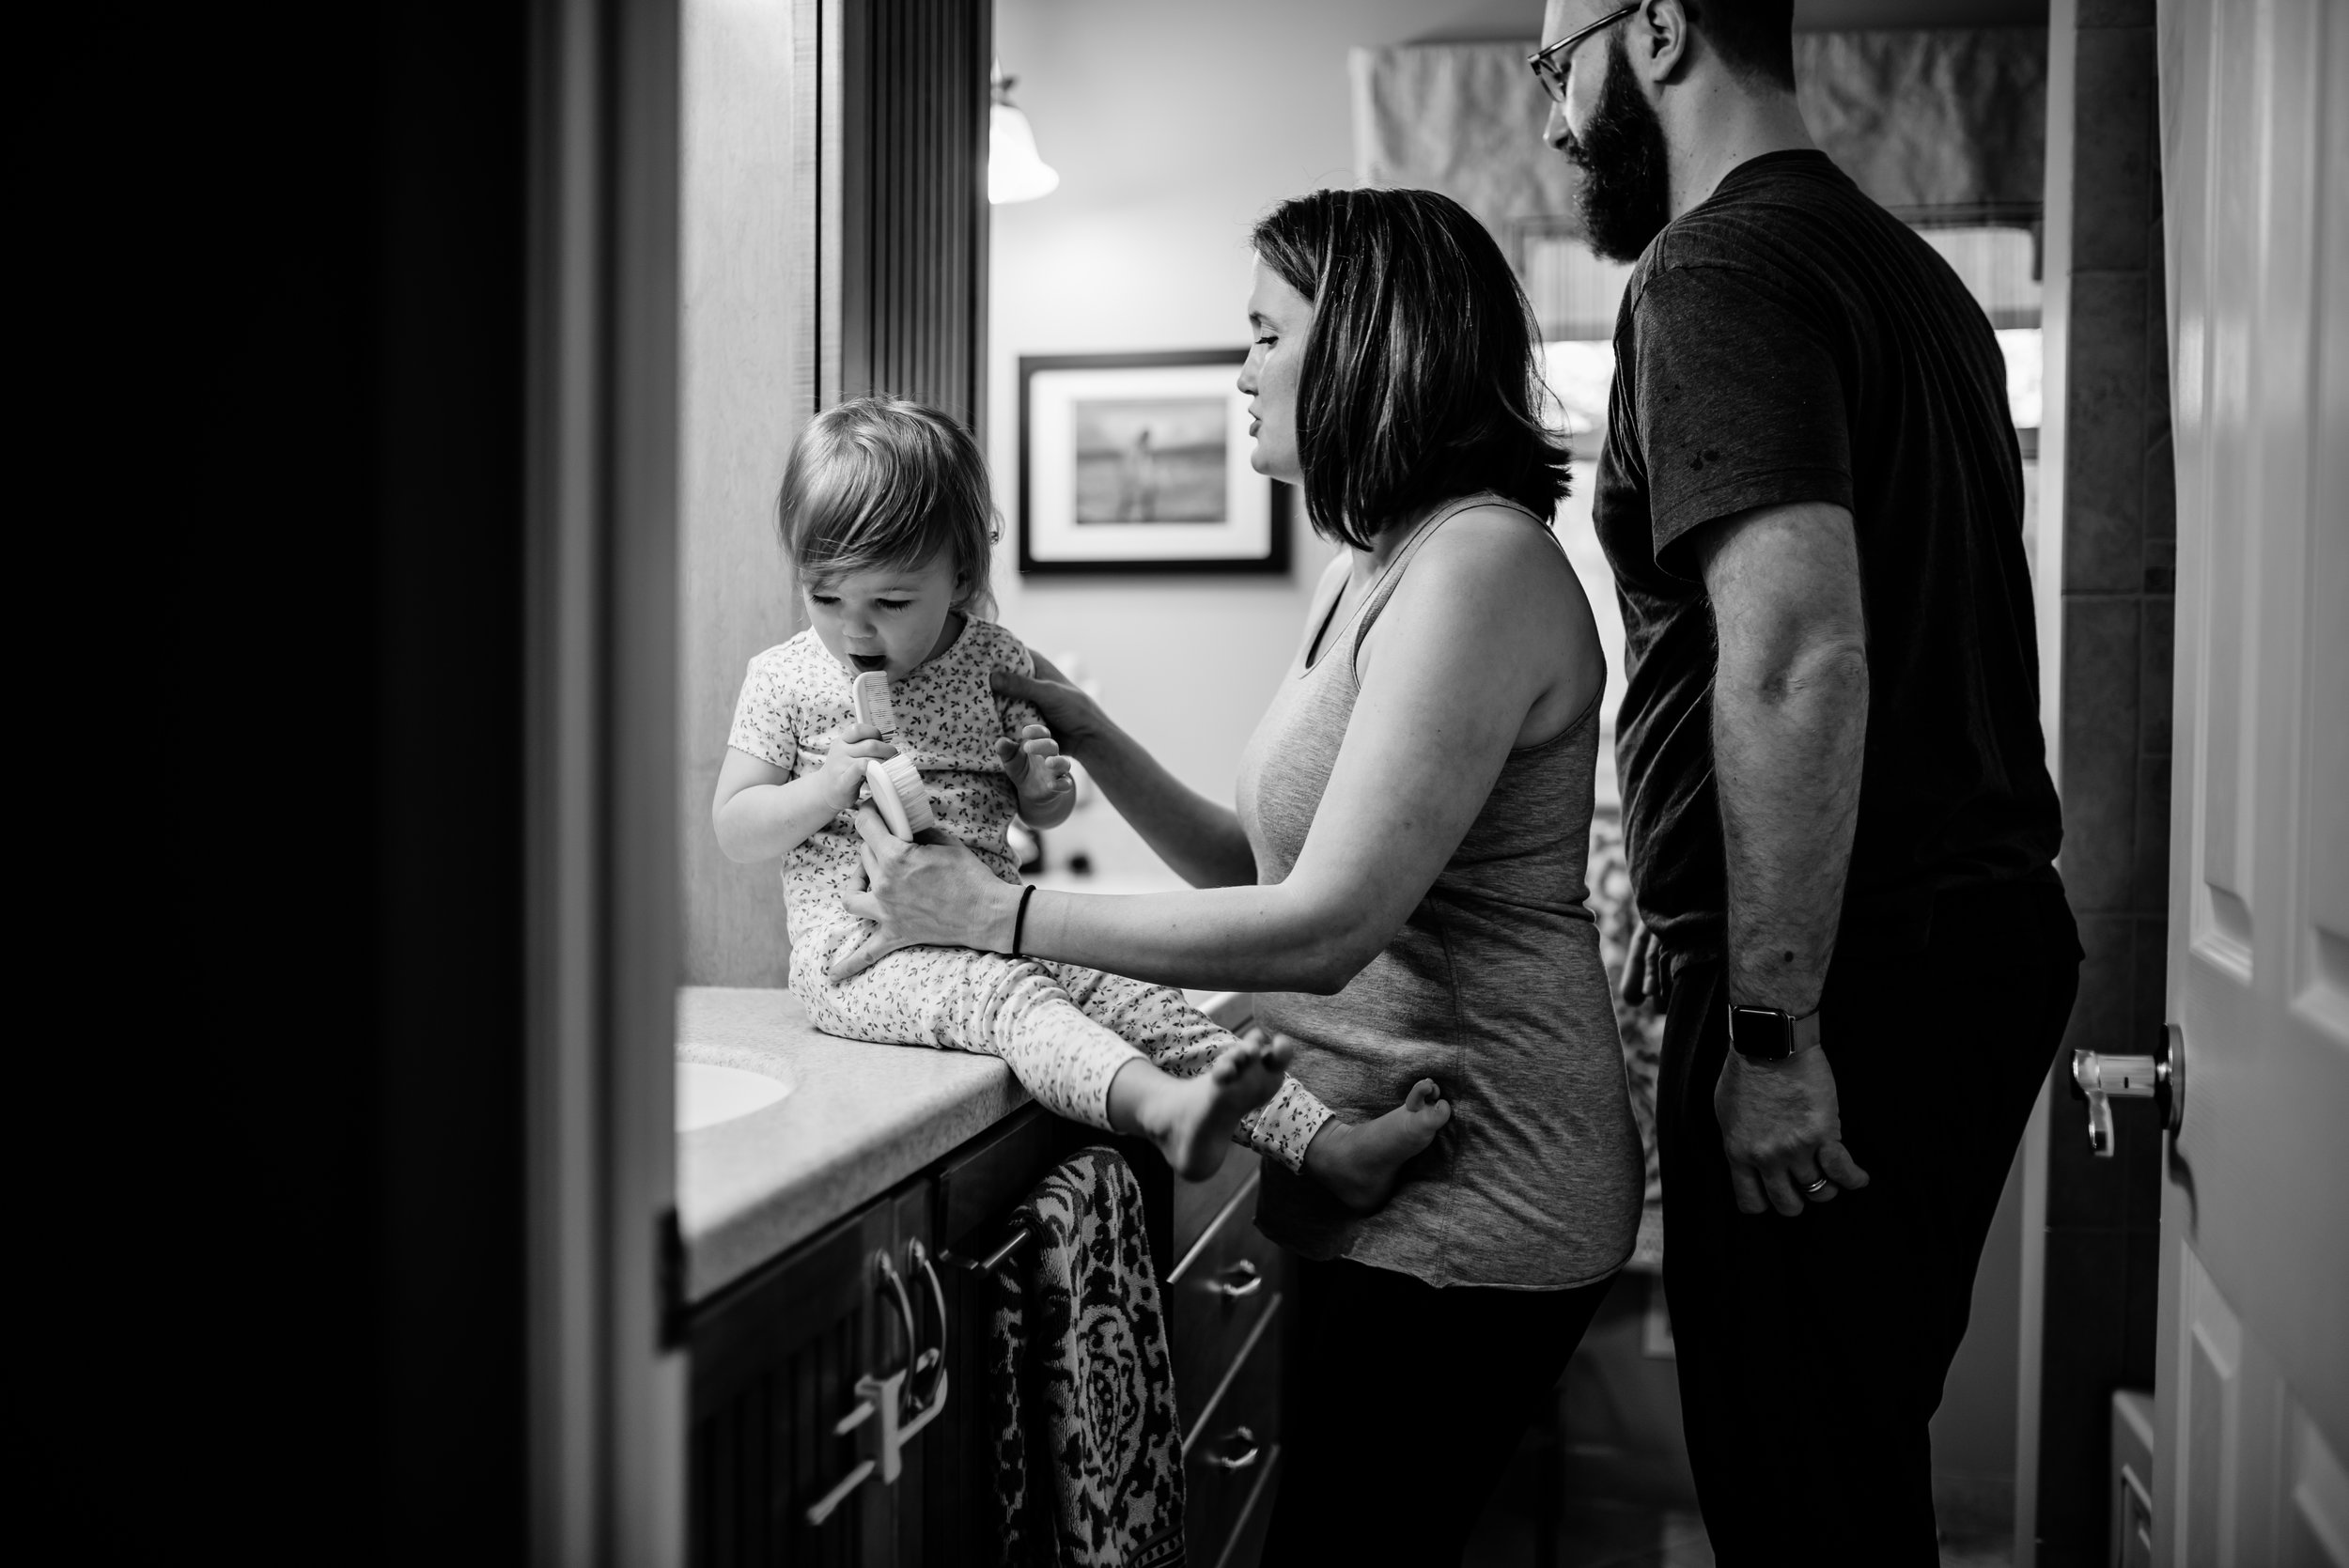 Mom and Dad get daughter ready for the day in bathroom